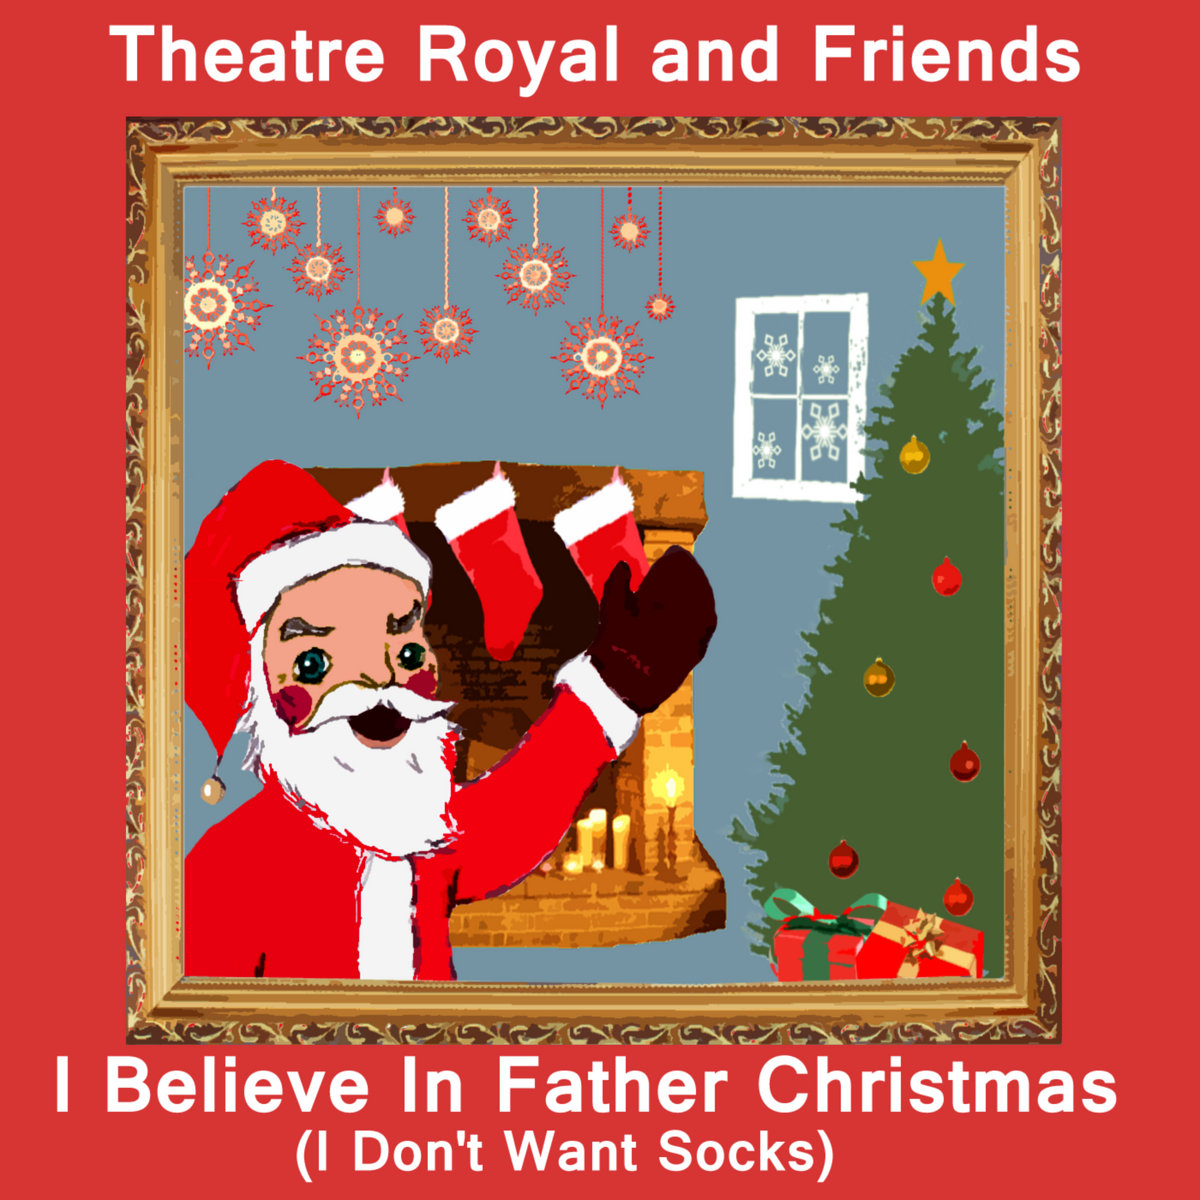 I Believe In Christmas.I Believe In Father Christmas I Don T Want Socks Theatre